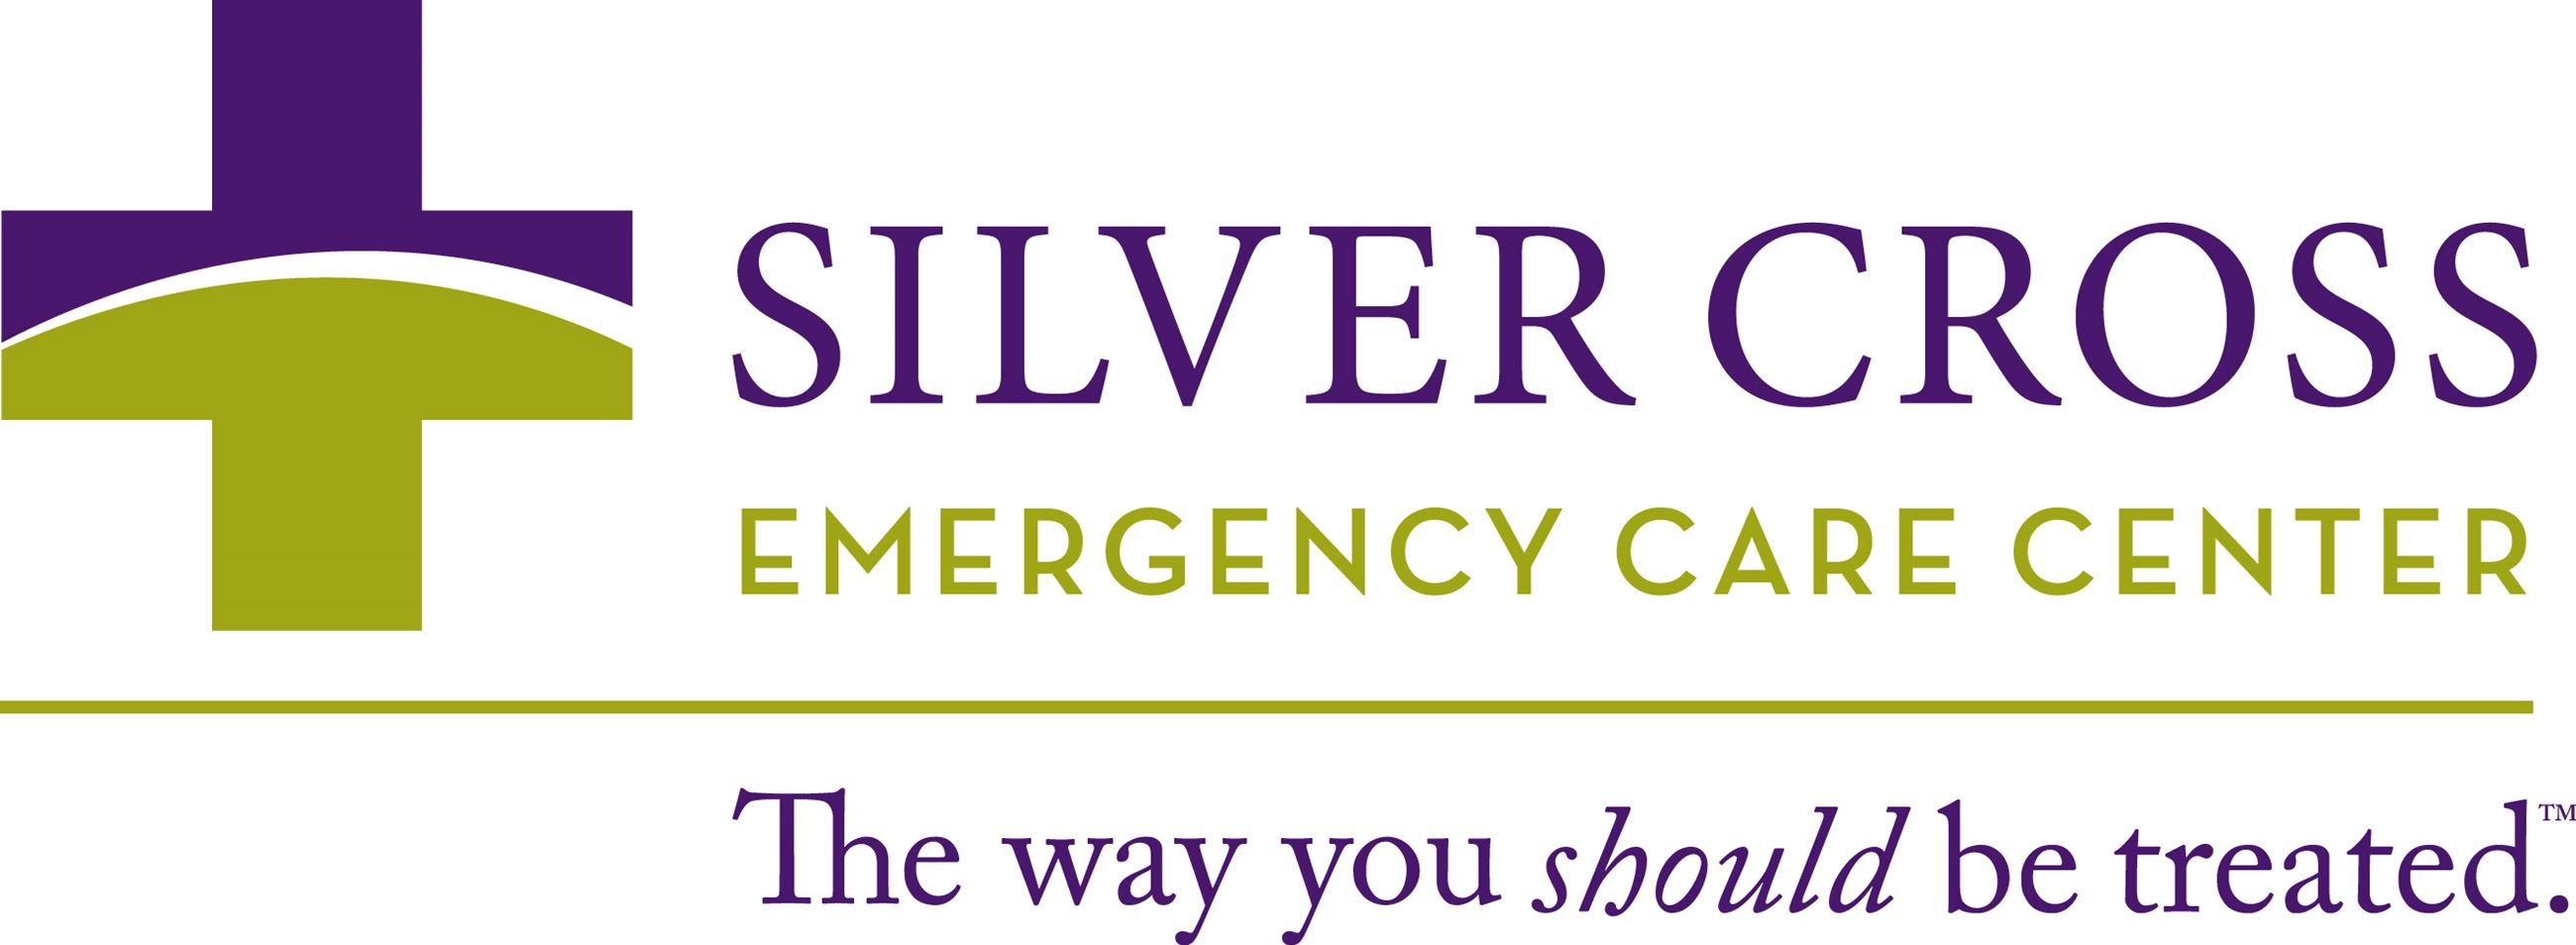 SC_emergency_care_center_w_tag